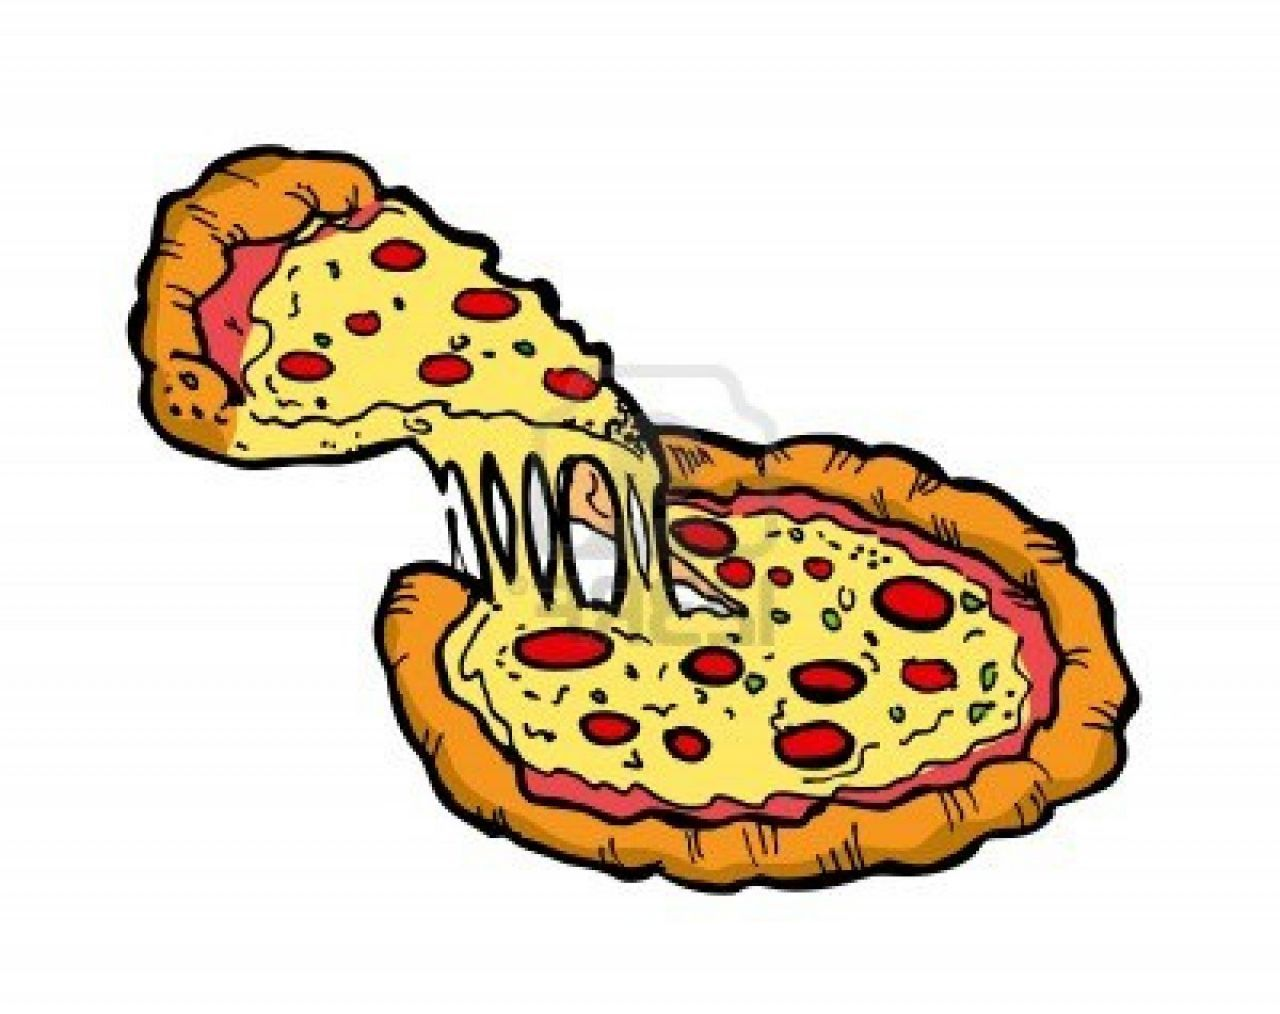 Clipart pizza pictures clip library stock Pizza Pie Clip Art   Clipart Panda - Free Clipart Images   clip art ... clip library stock